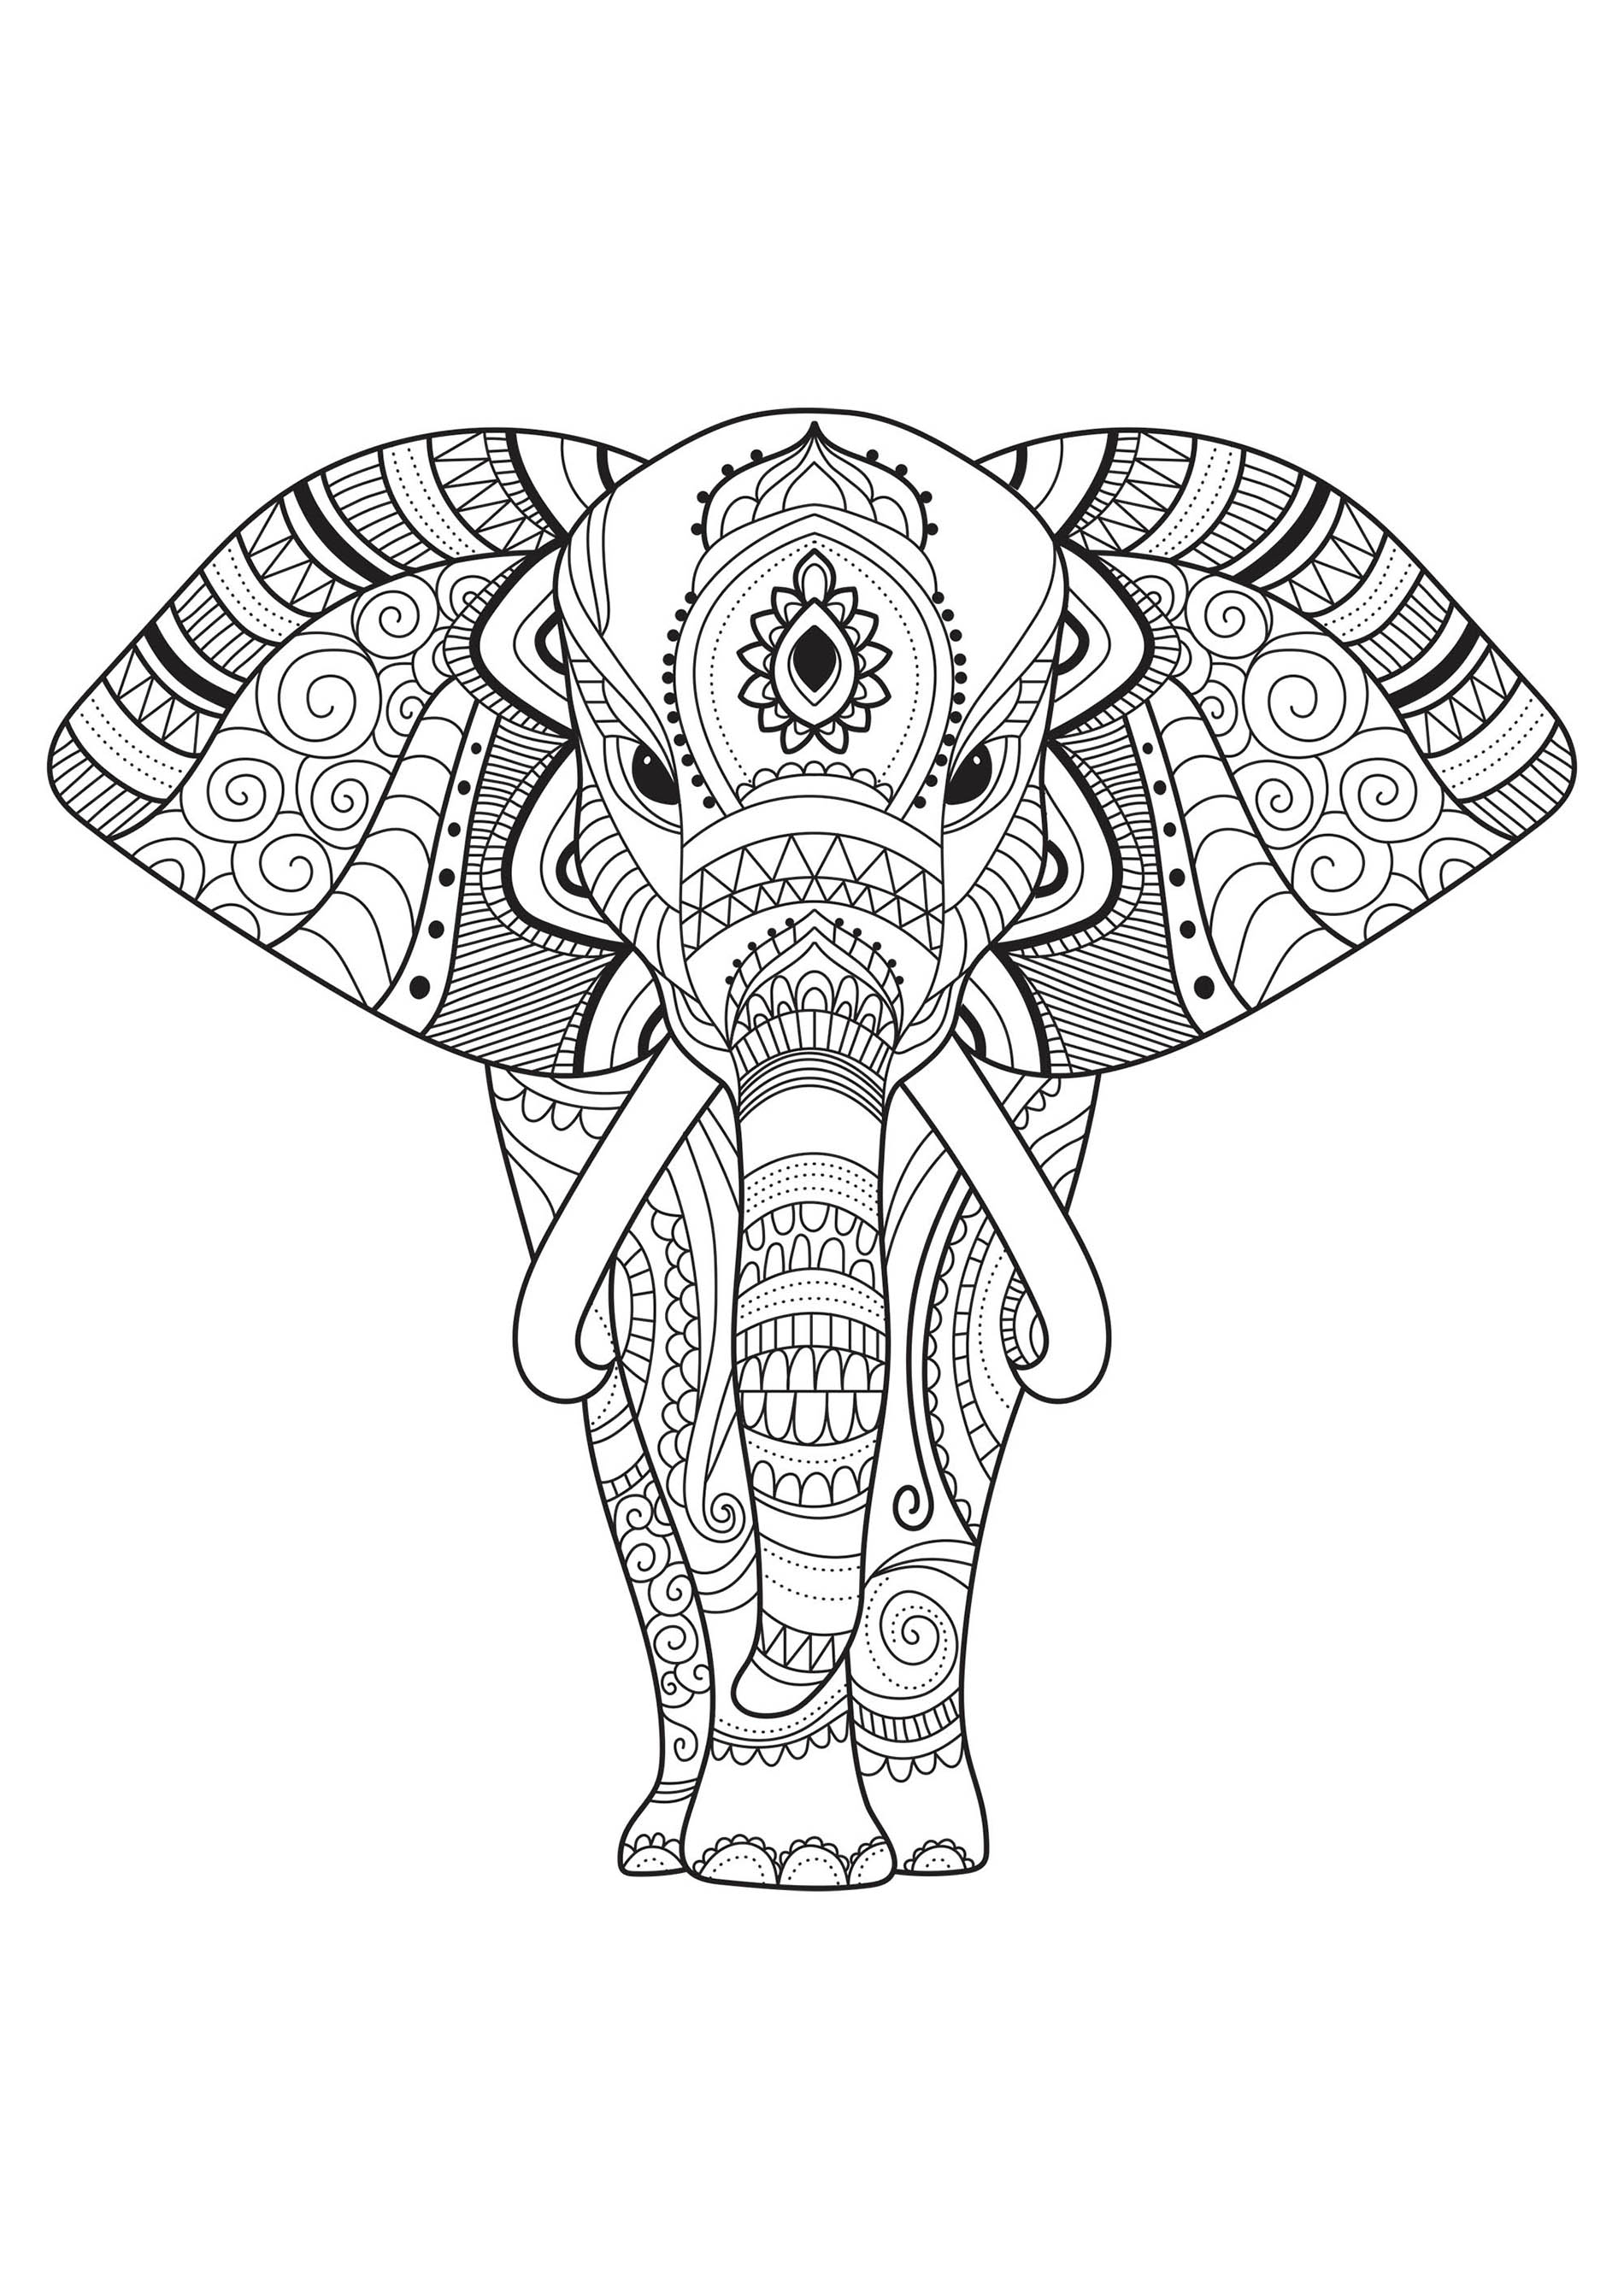 elephant images for colouring elephants to color for children elephants kids coloring colouring for images elephant